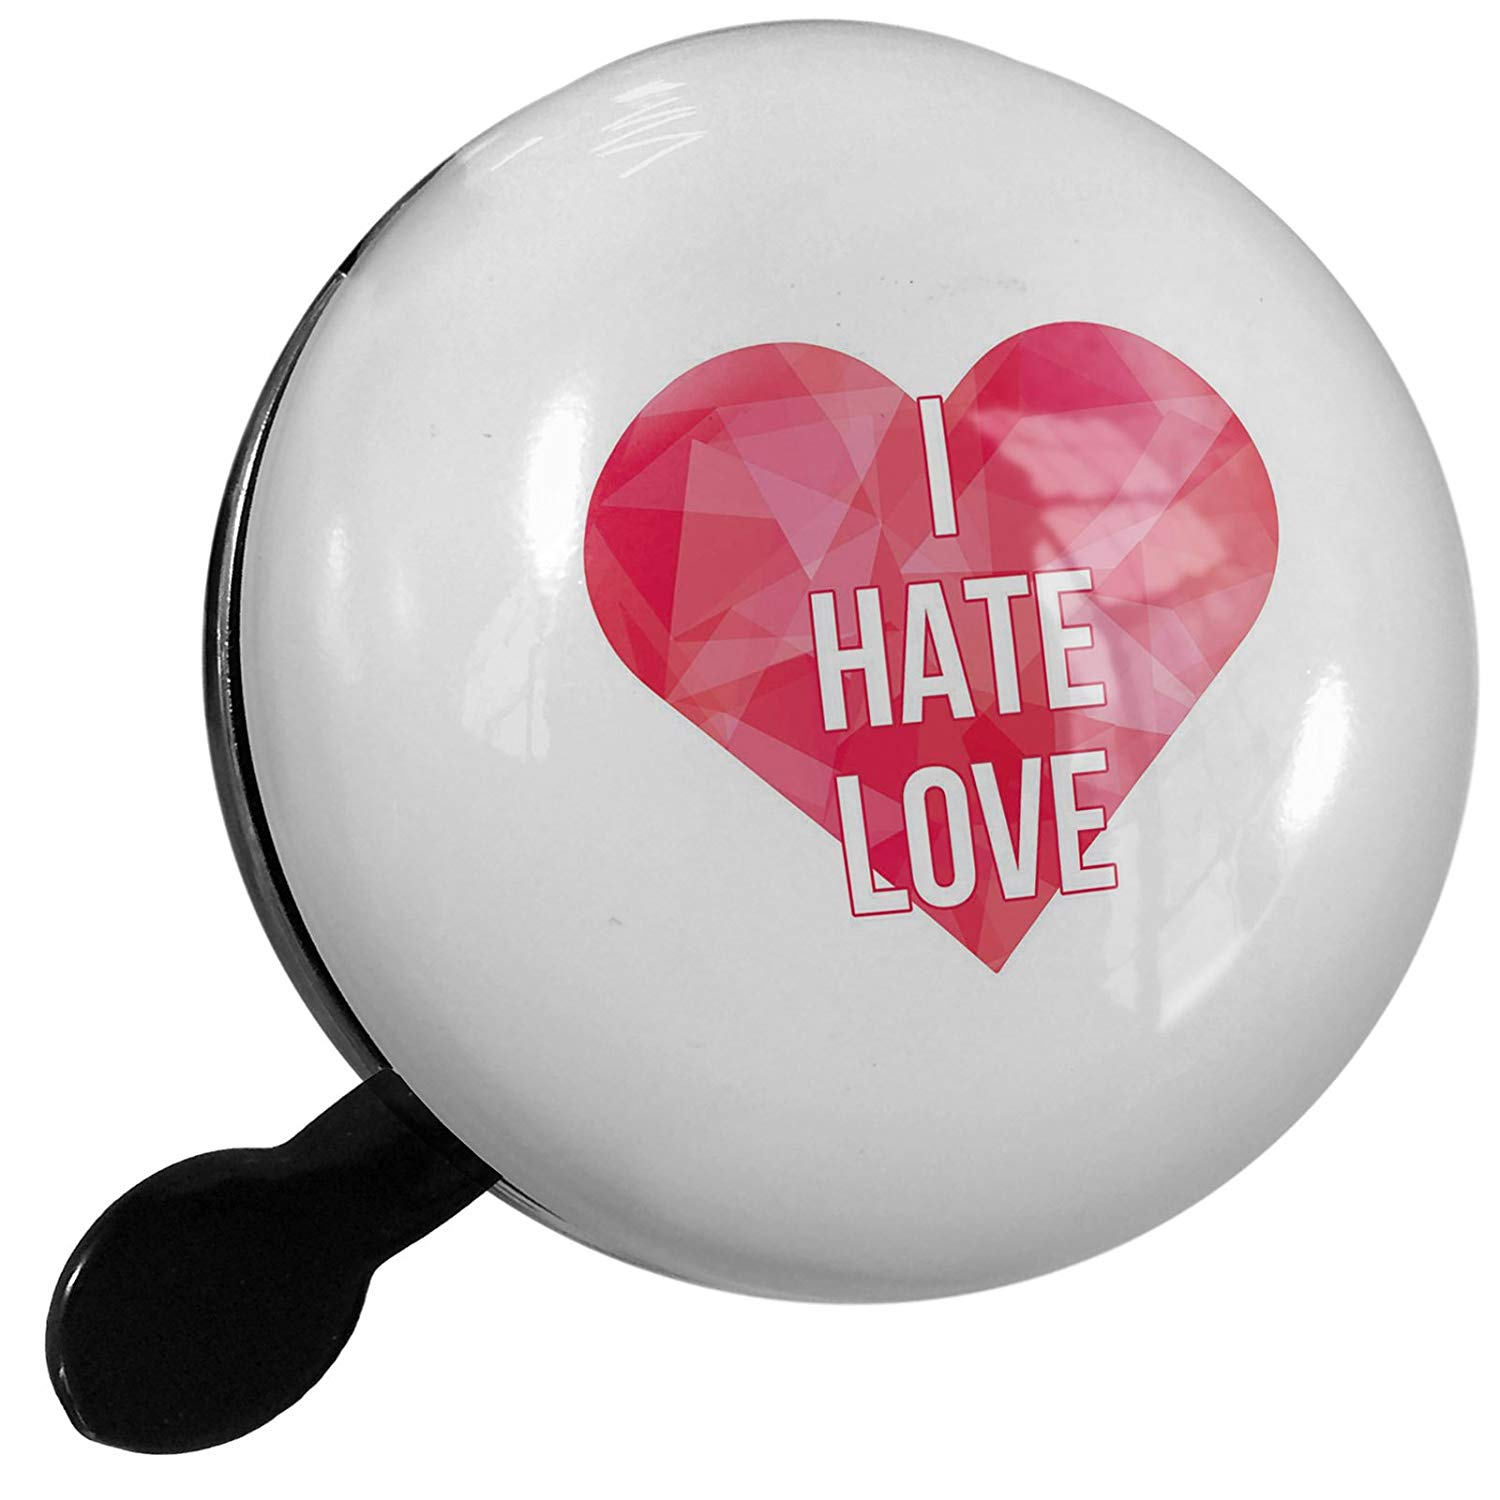 d8789476223a3 Get Quotations · Small Bike Bell I Hate Love Valentine s Day Hot Pink  Geometric Heart - NEONBLOND